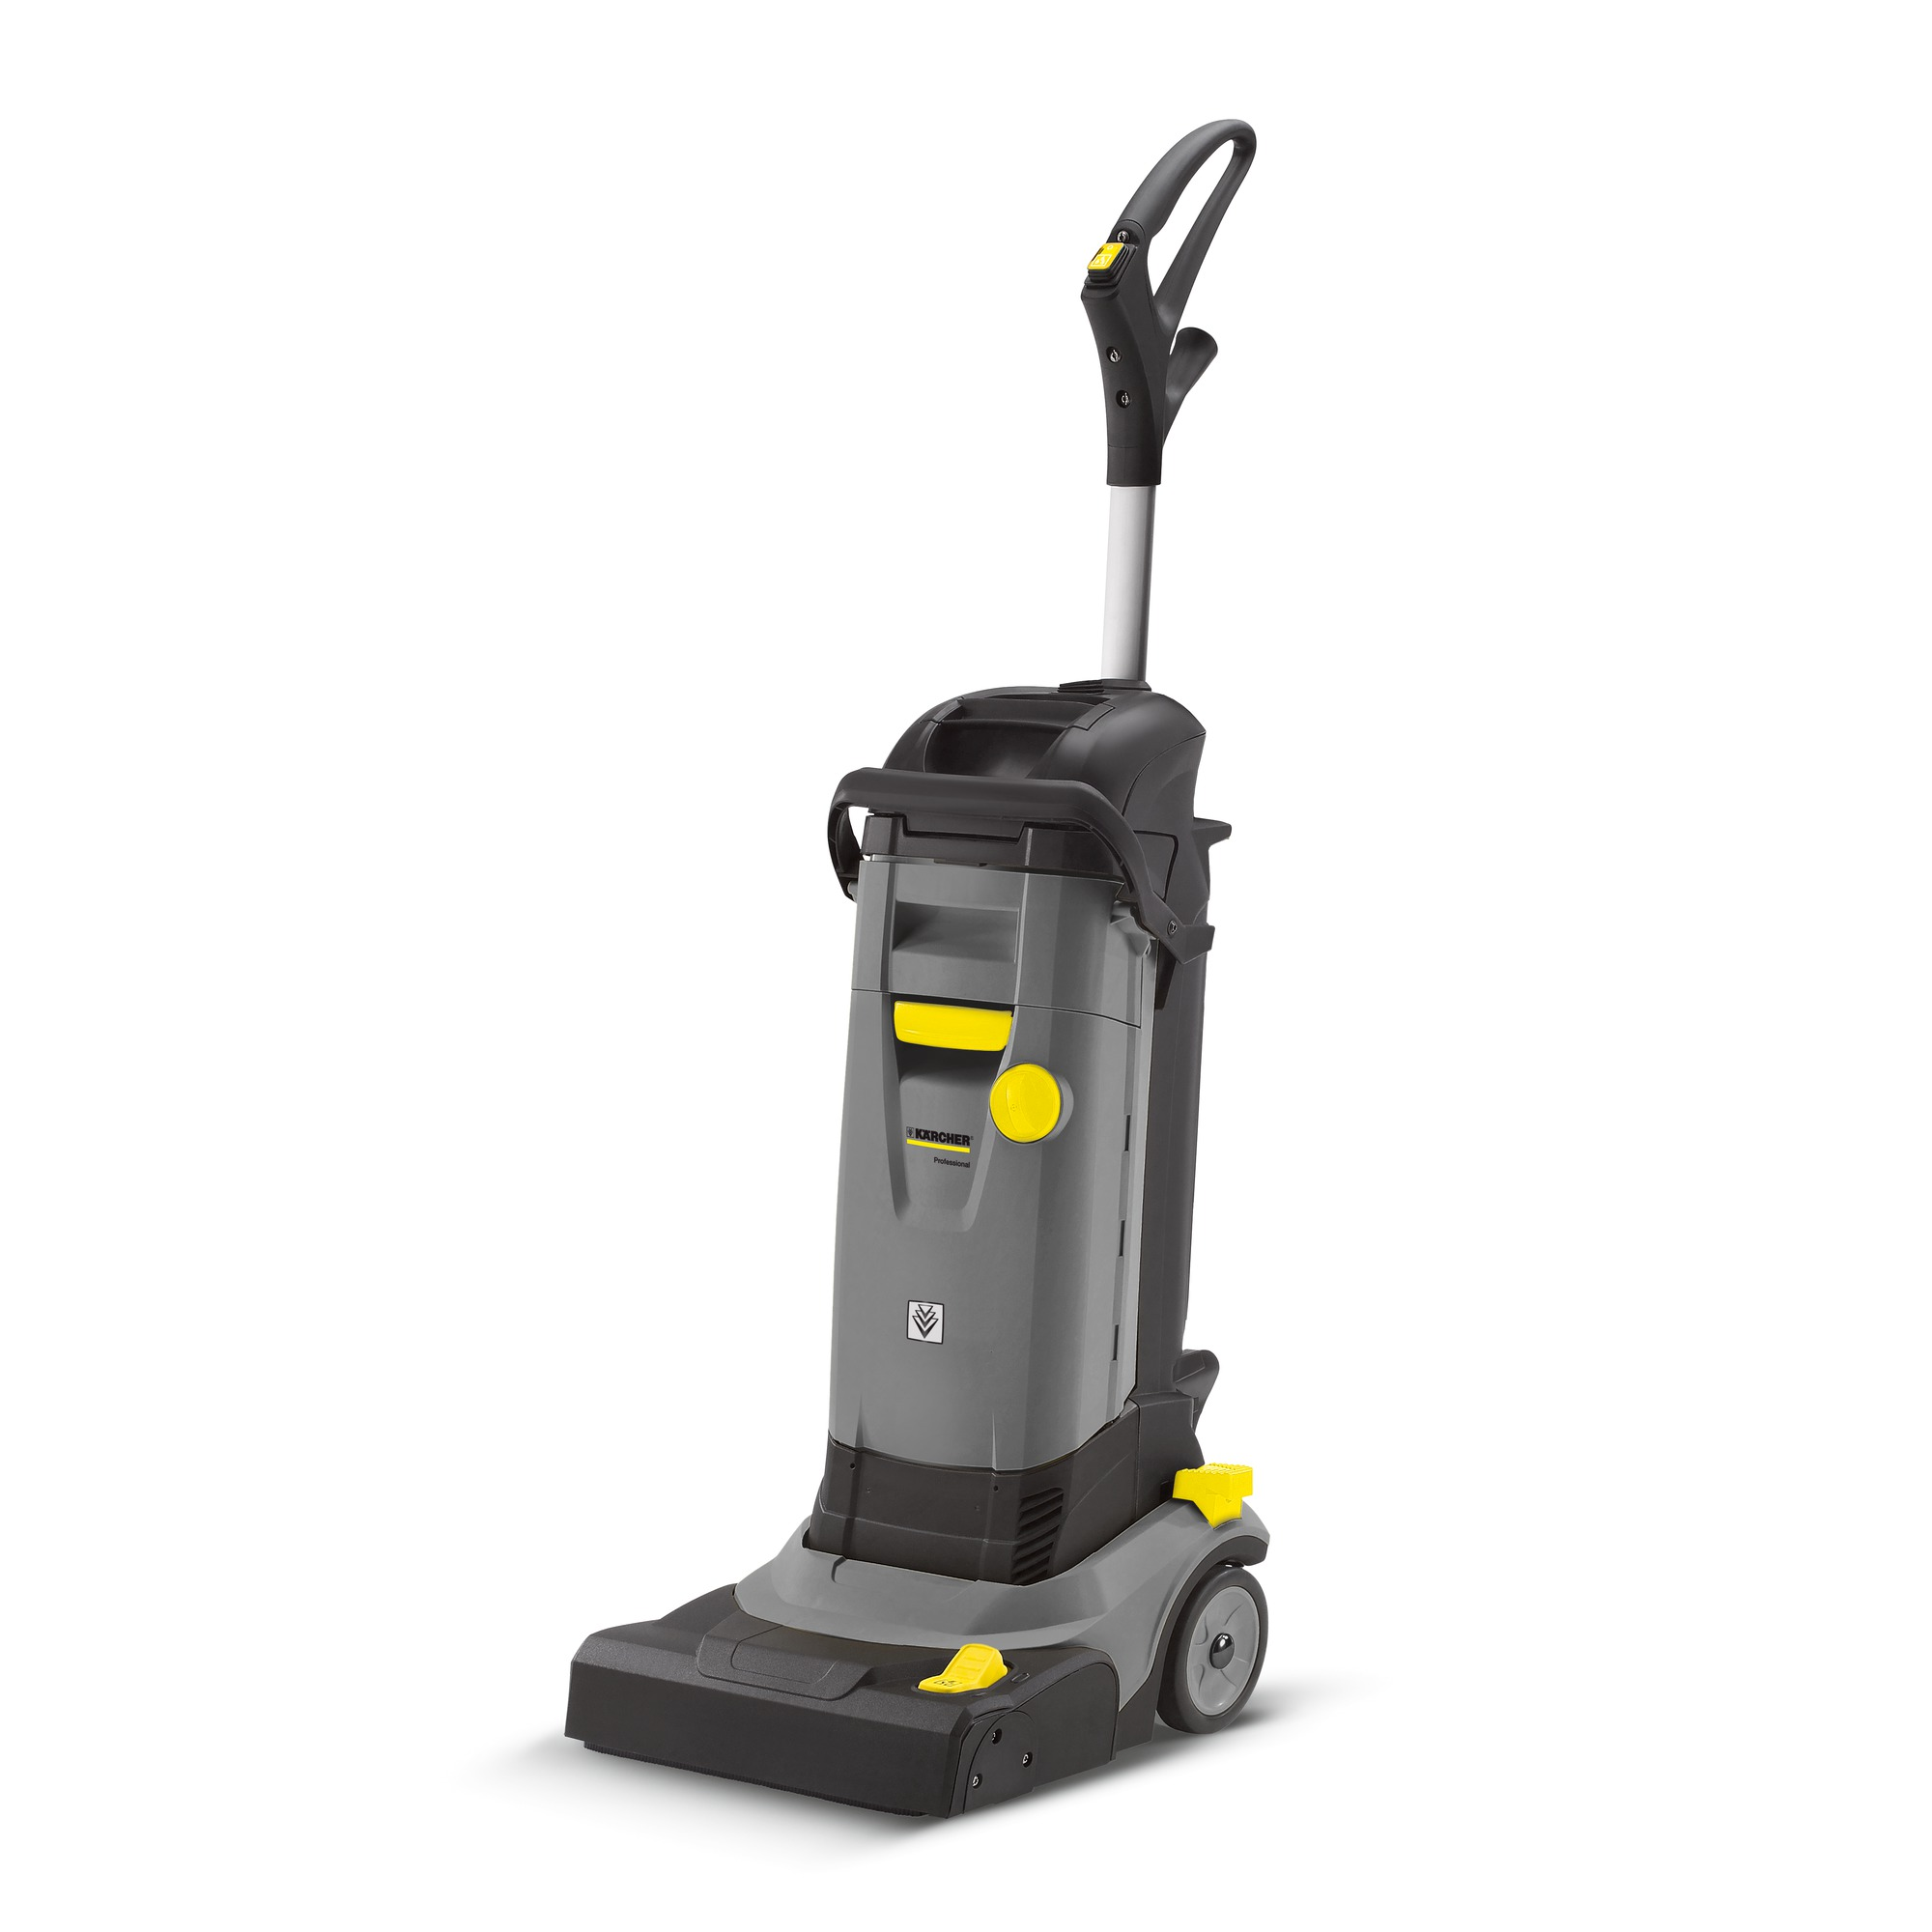 BR 30/4 C 1.783-220.0 KARCHER - KARCHER PREMIER CENTER